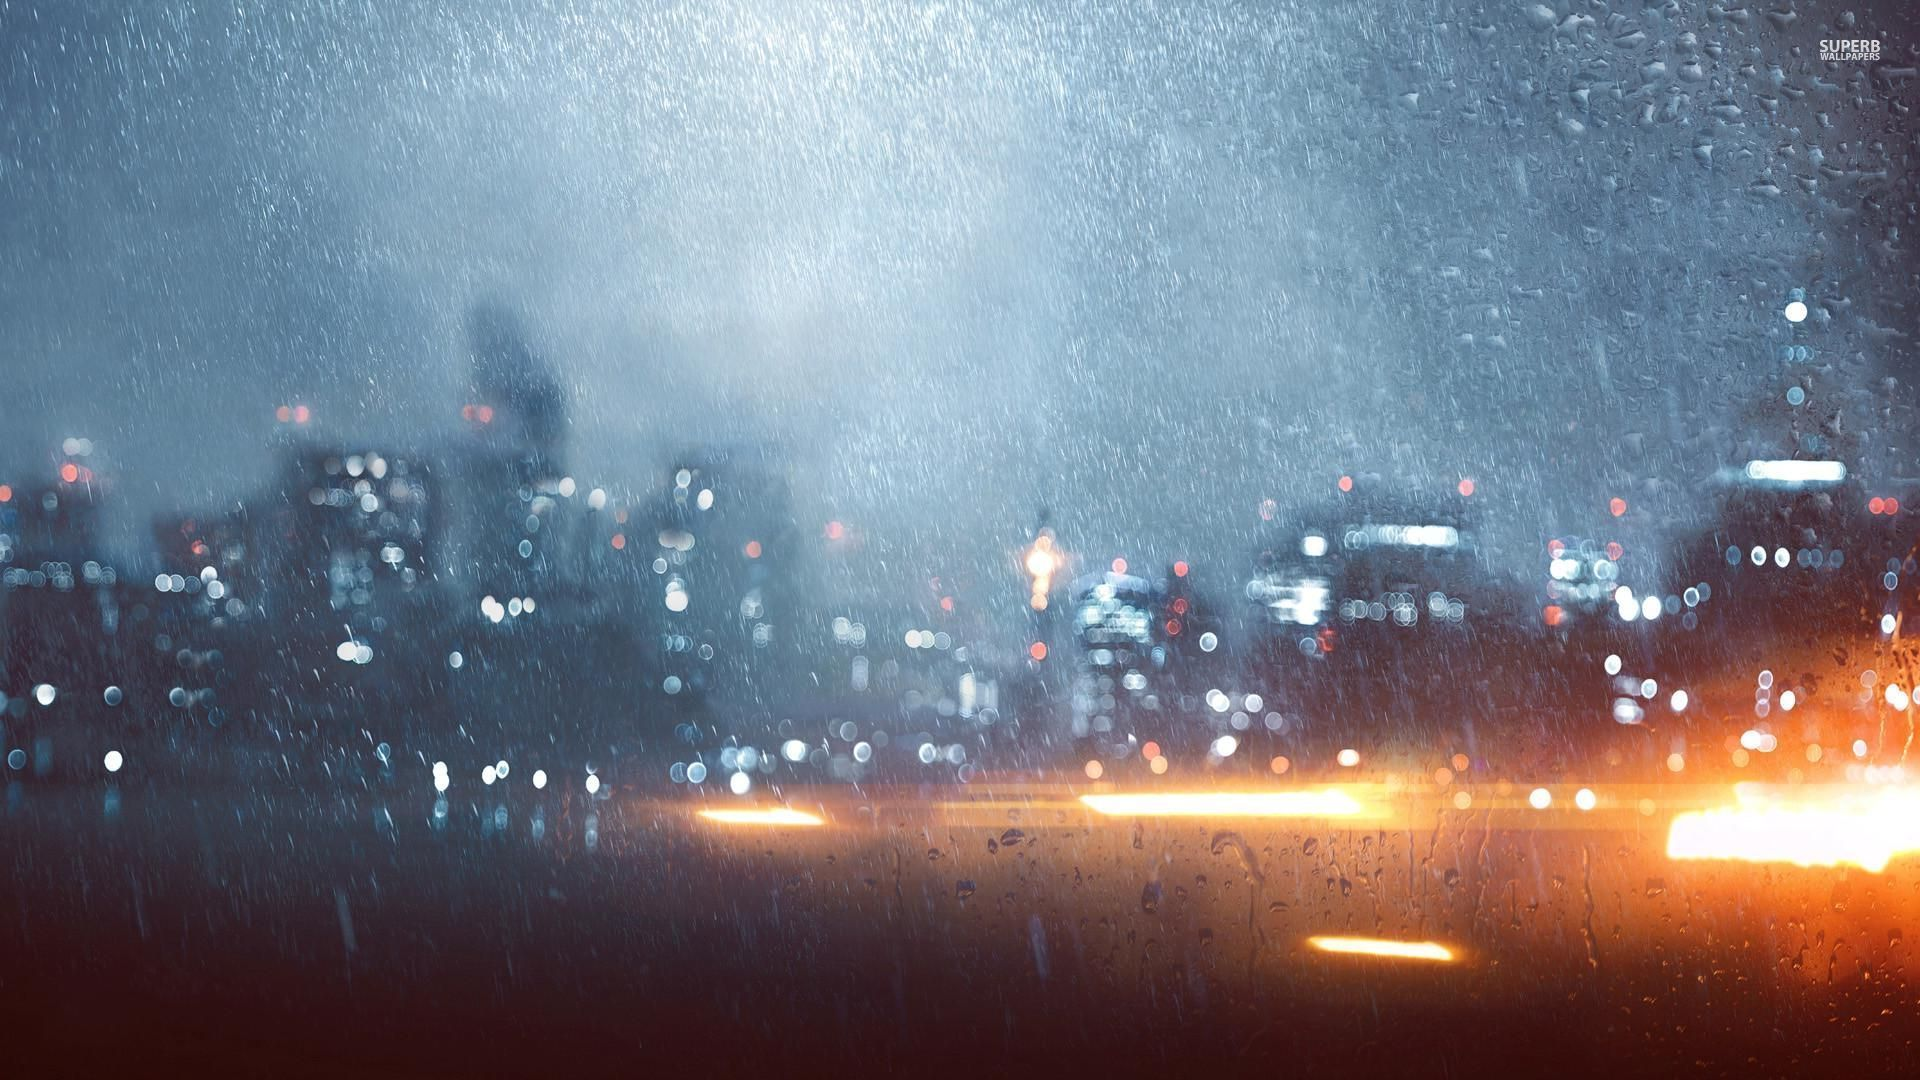 Battlefield 4 wallpaper 1920x1080 jpg